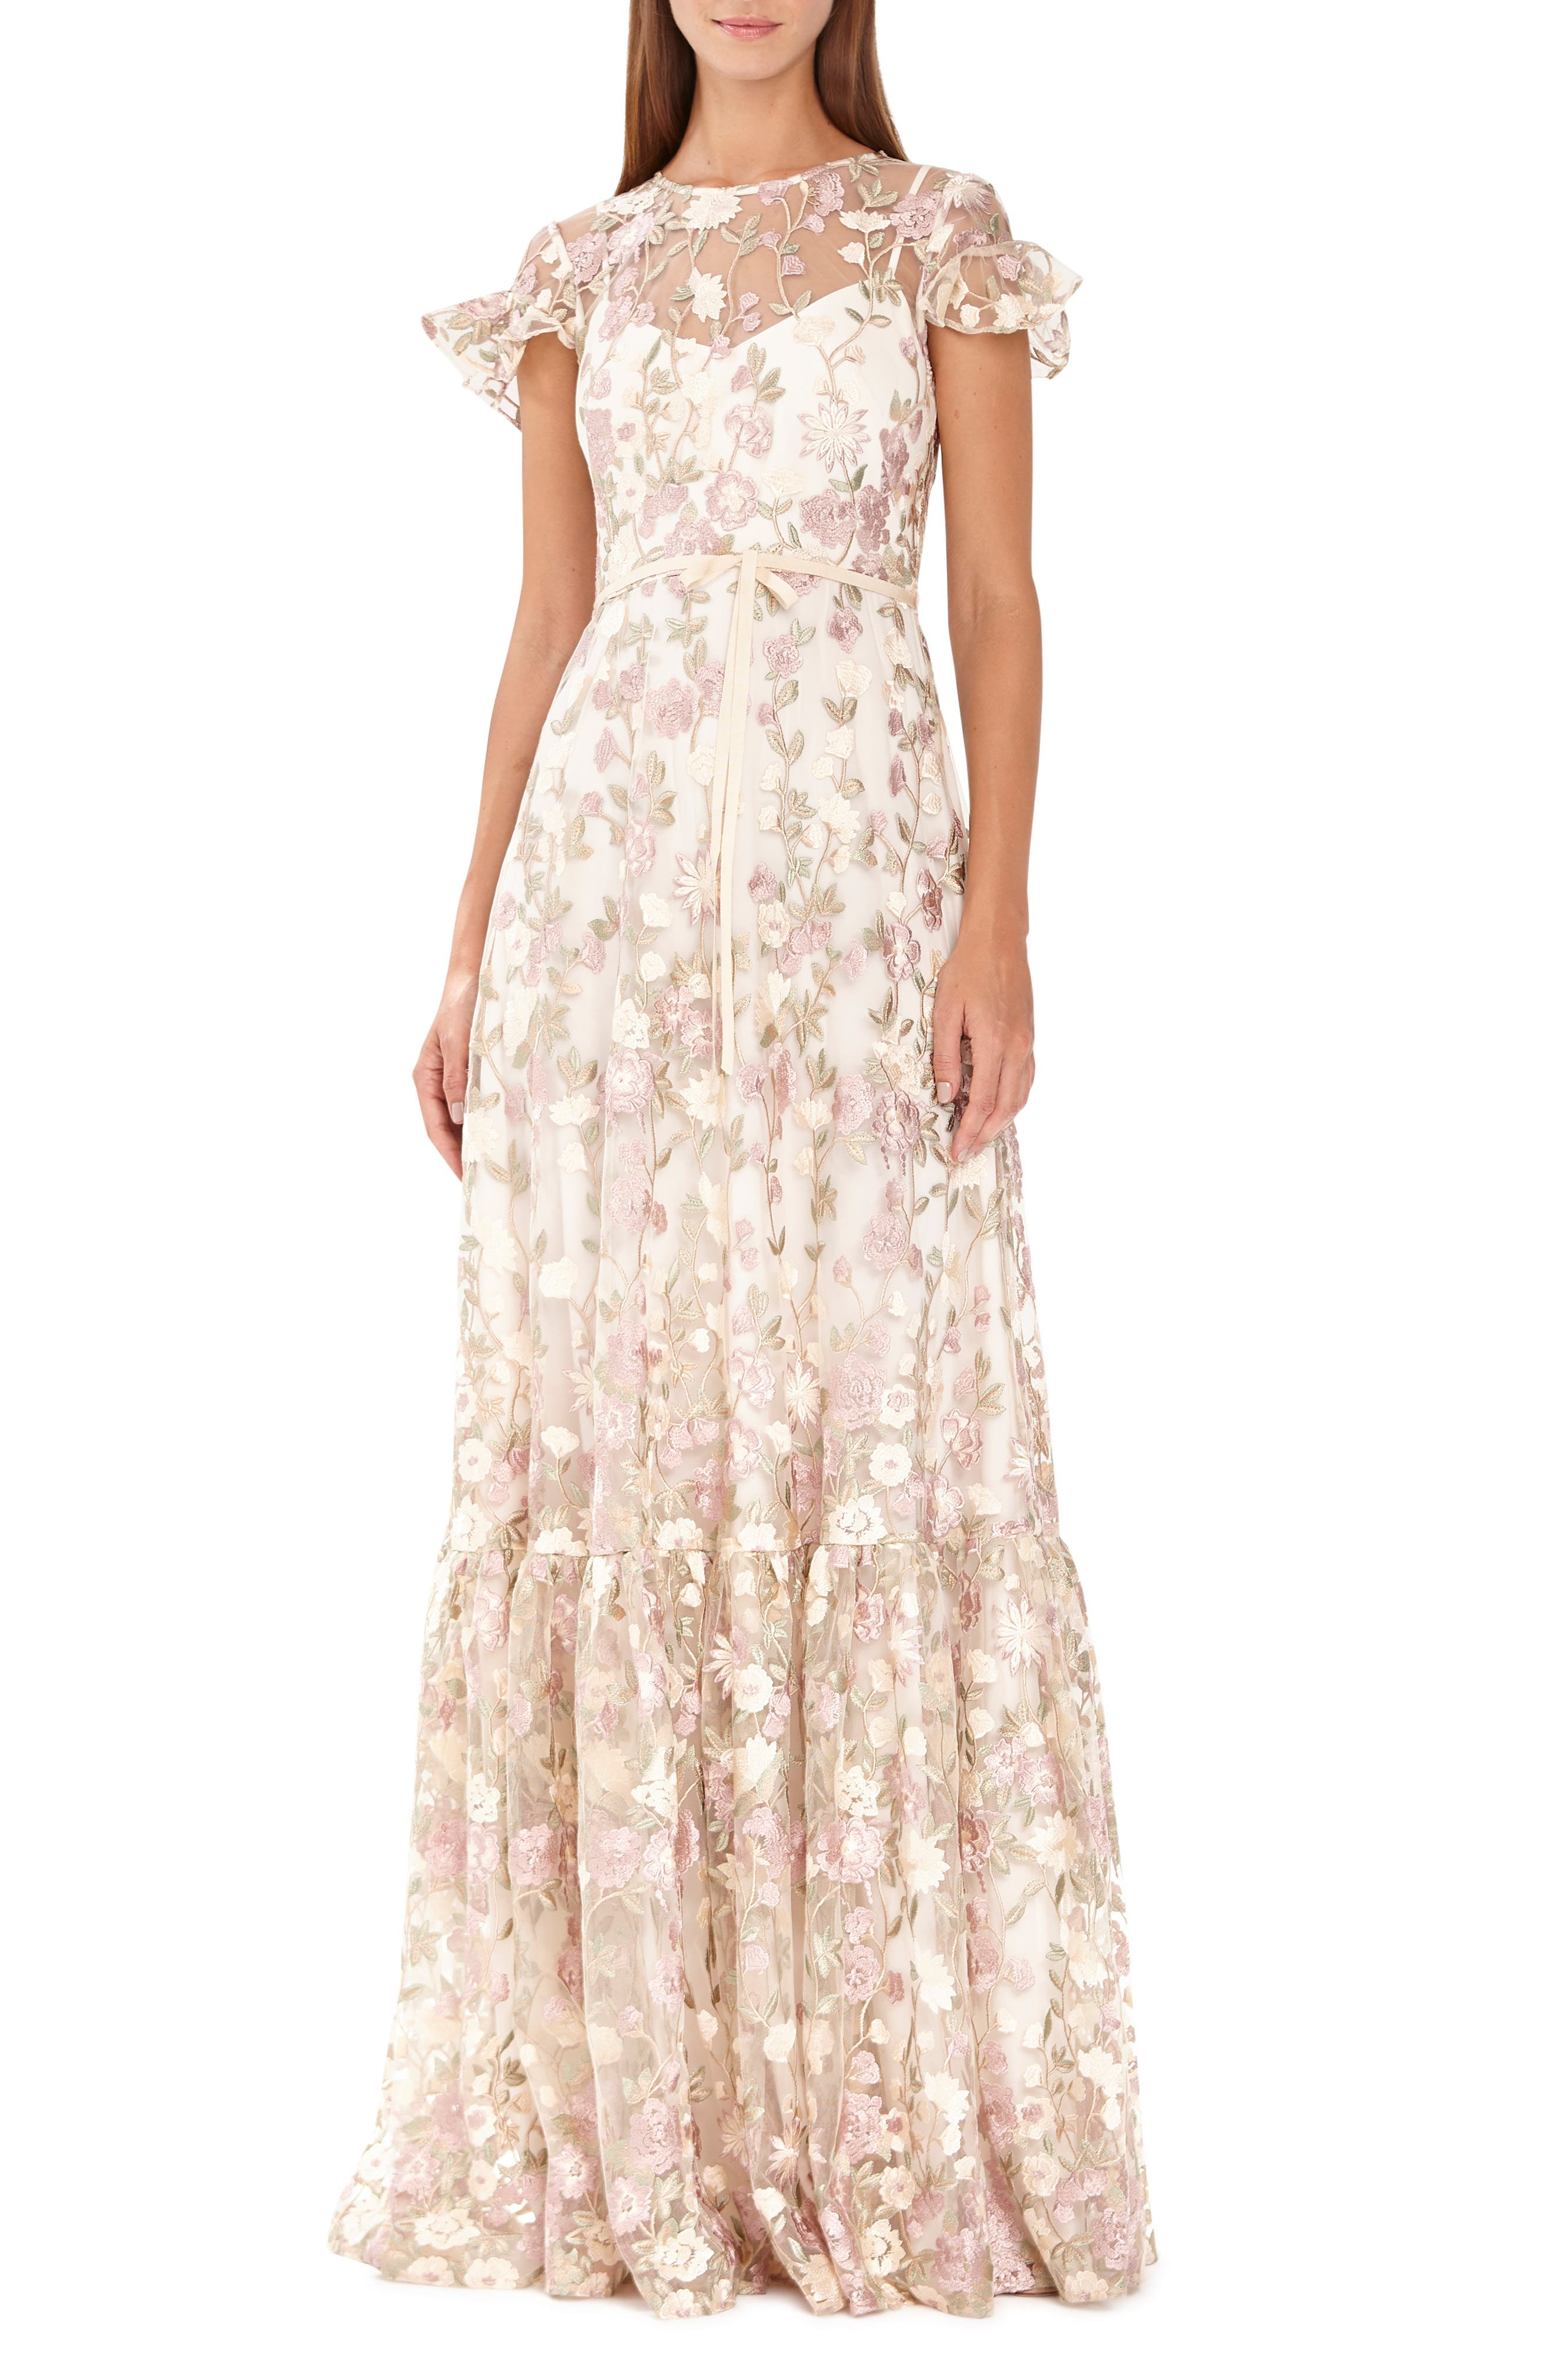 Ml Monique Lhuillier Floral Embroidered Mesh Evening Dress, Pink